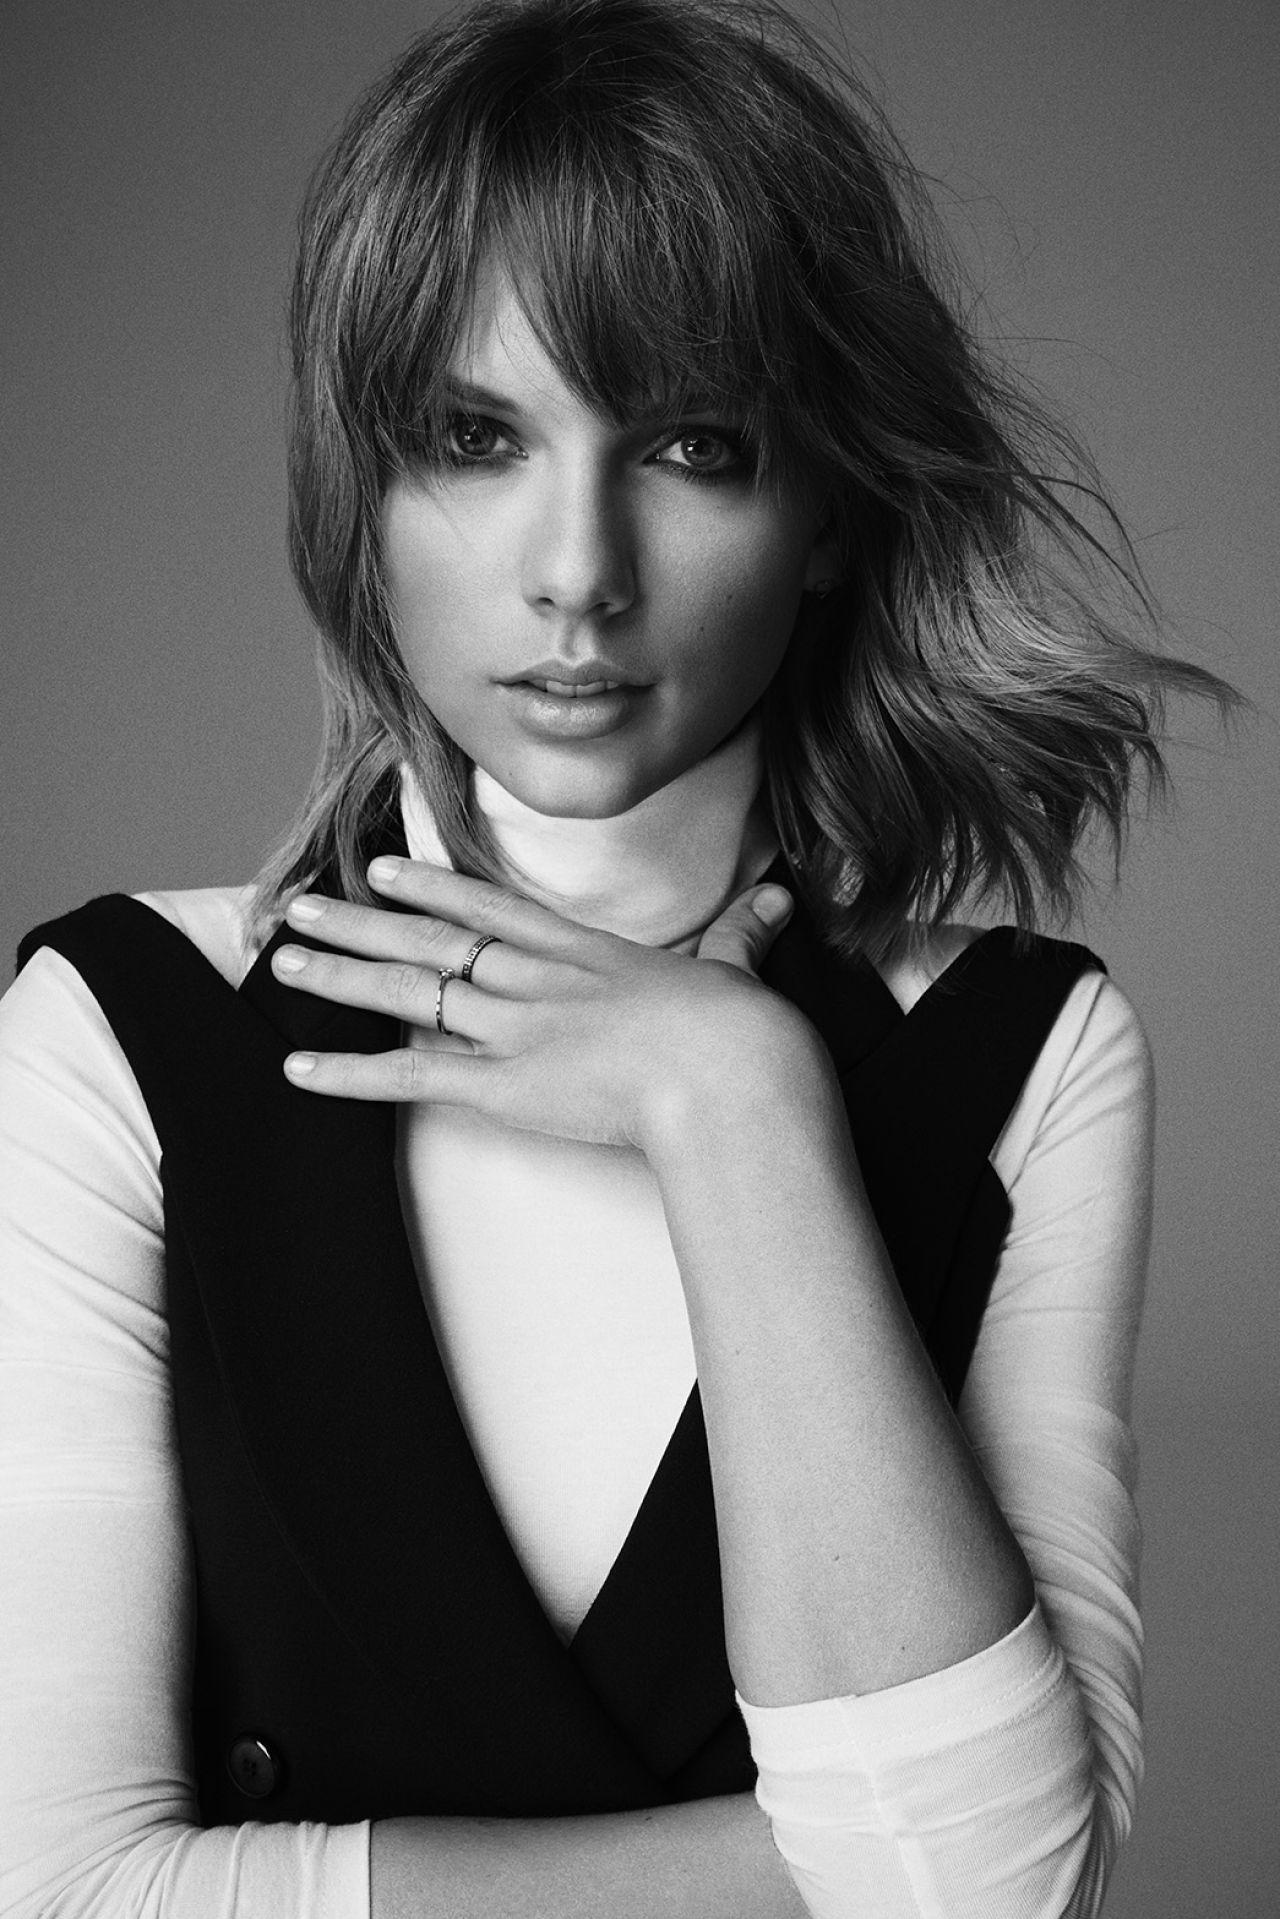 20+ Taylor Swift Photoshoot 2014 Images